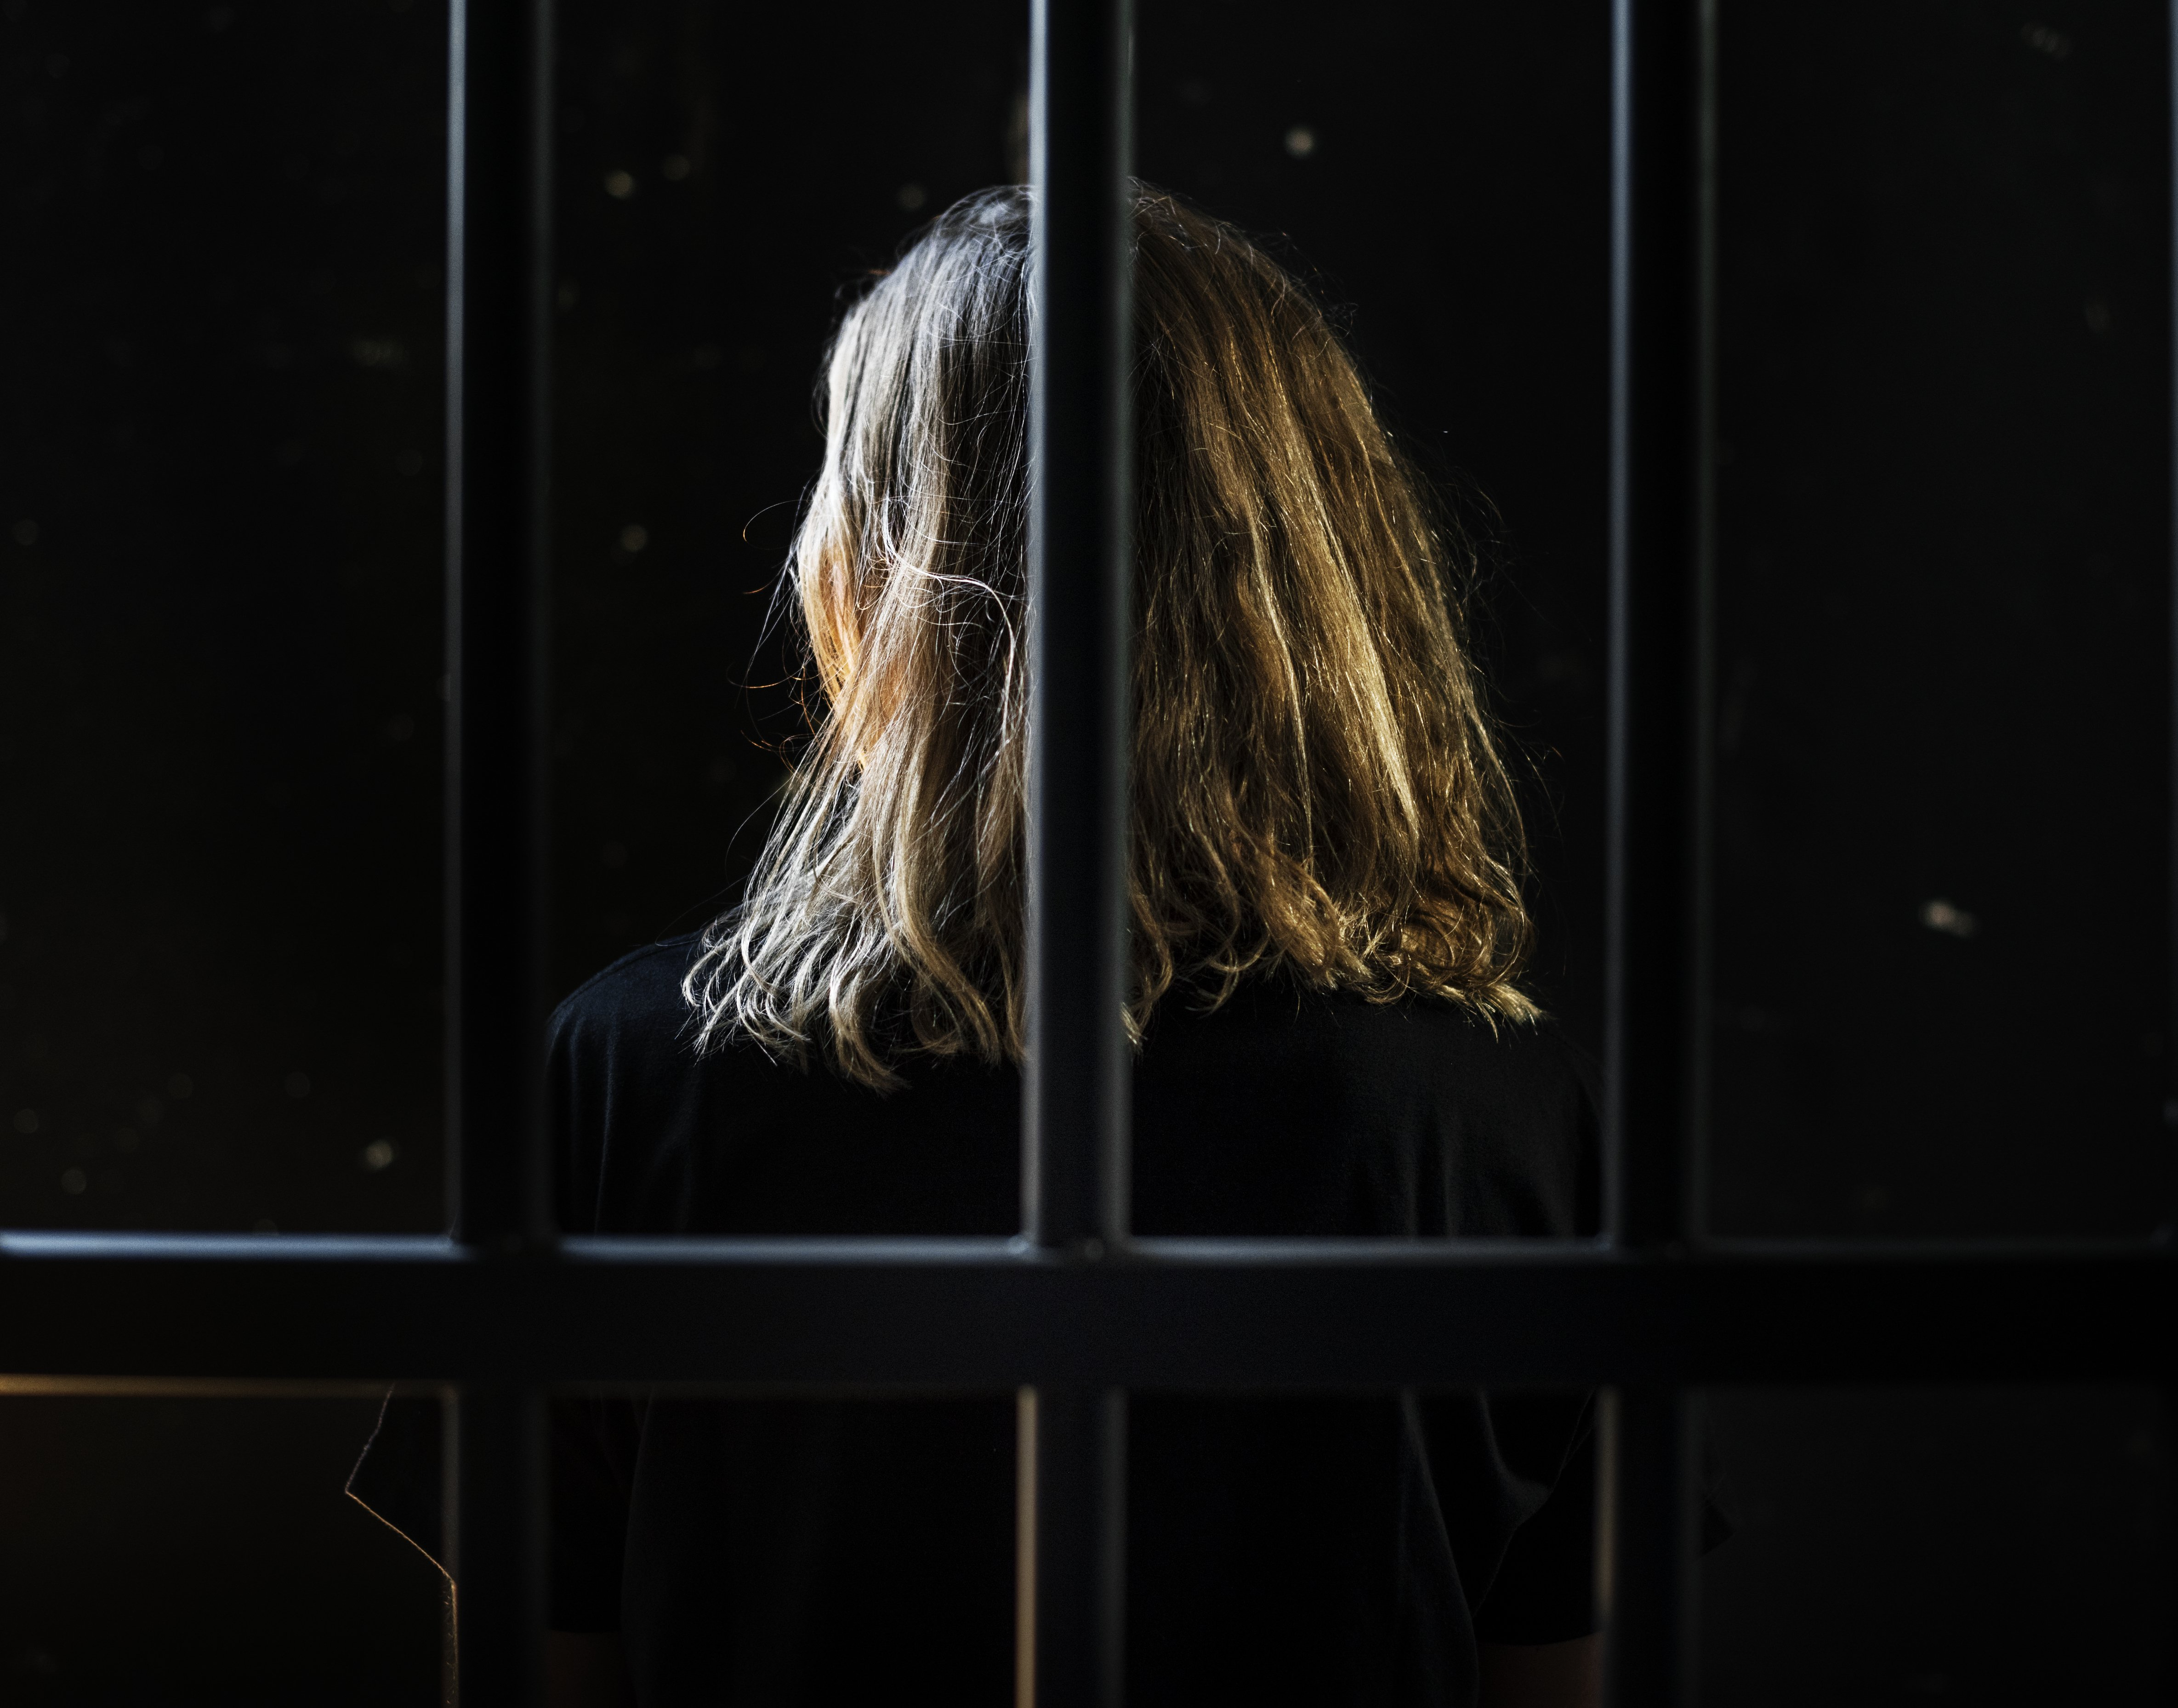 Woman behind bars. | Photo: Shutterstock